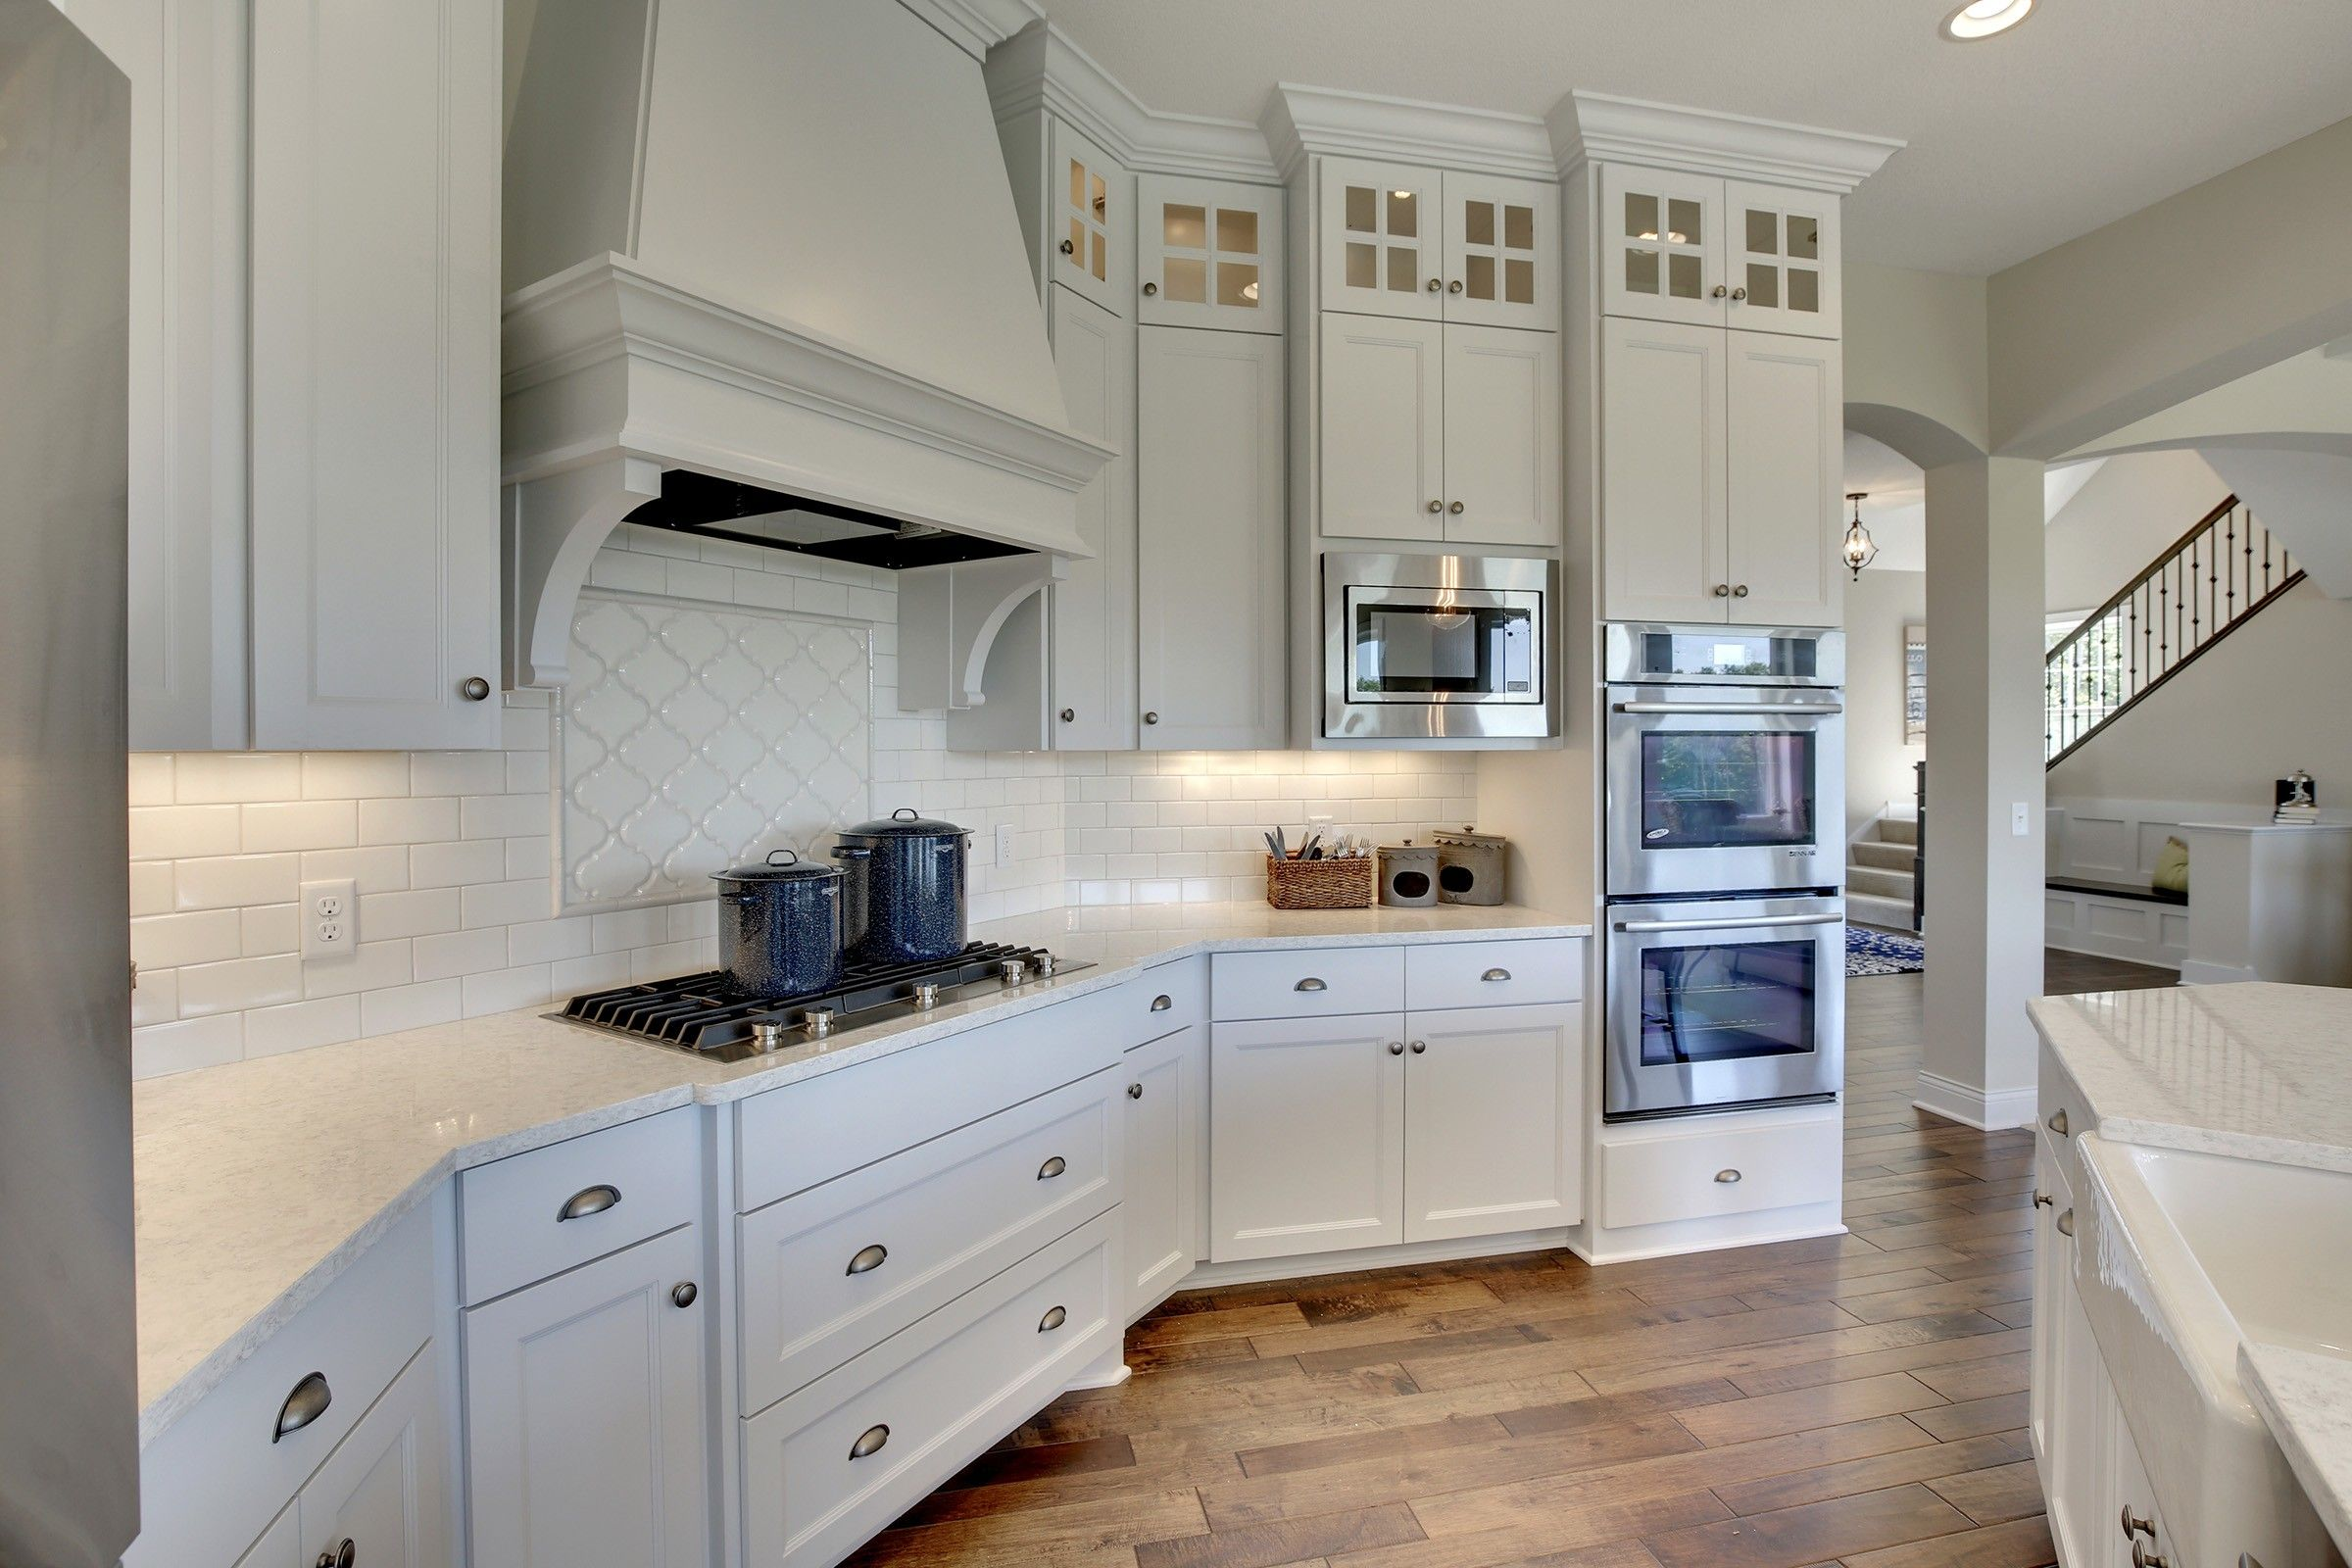 Image result for 10ft ceiling kitchen (With images ...